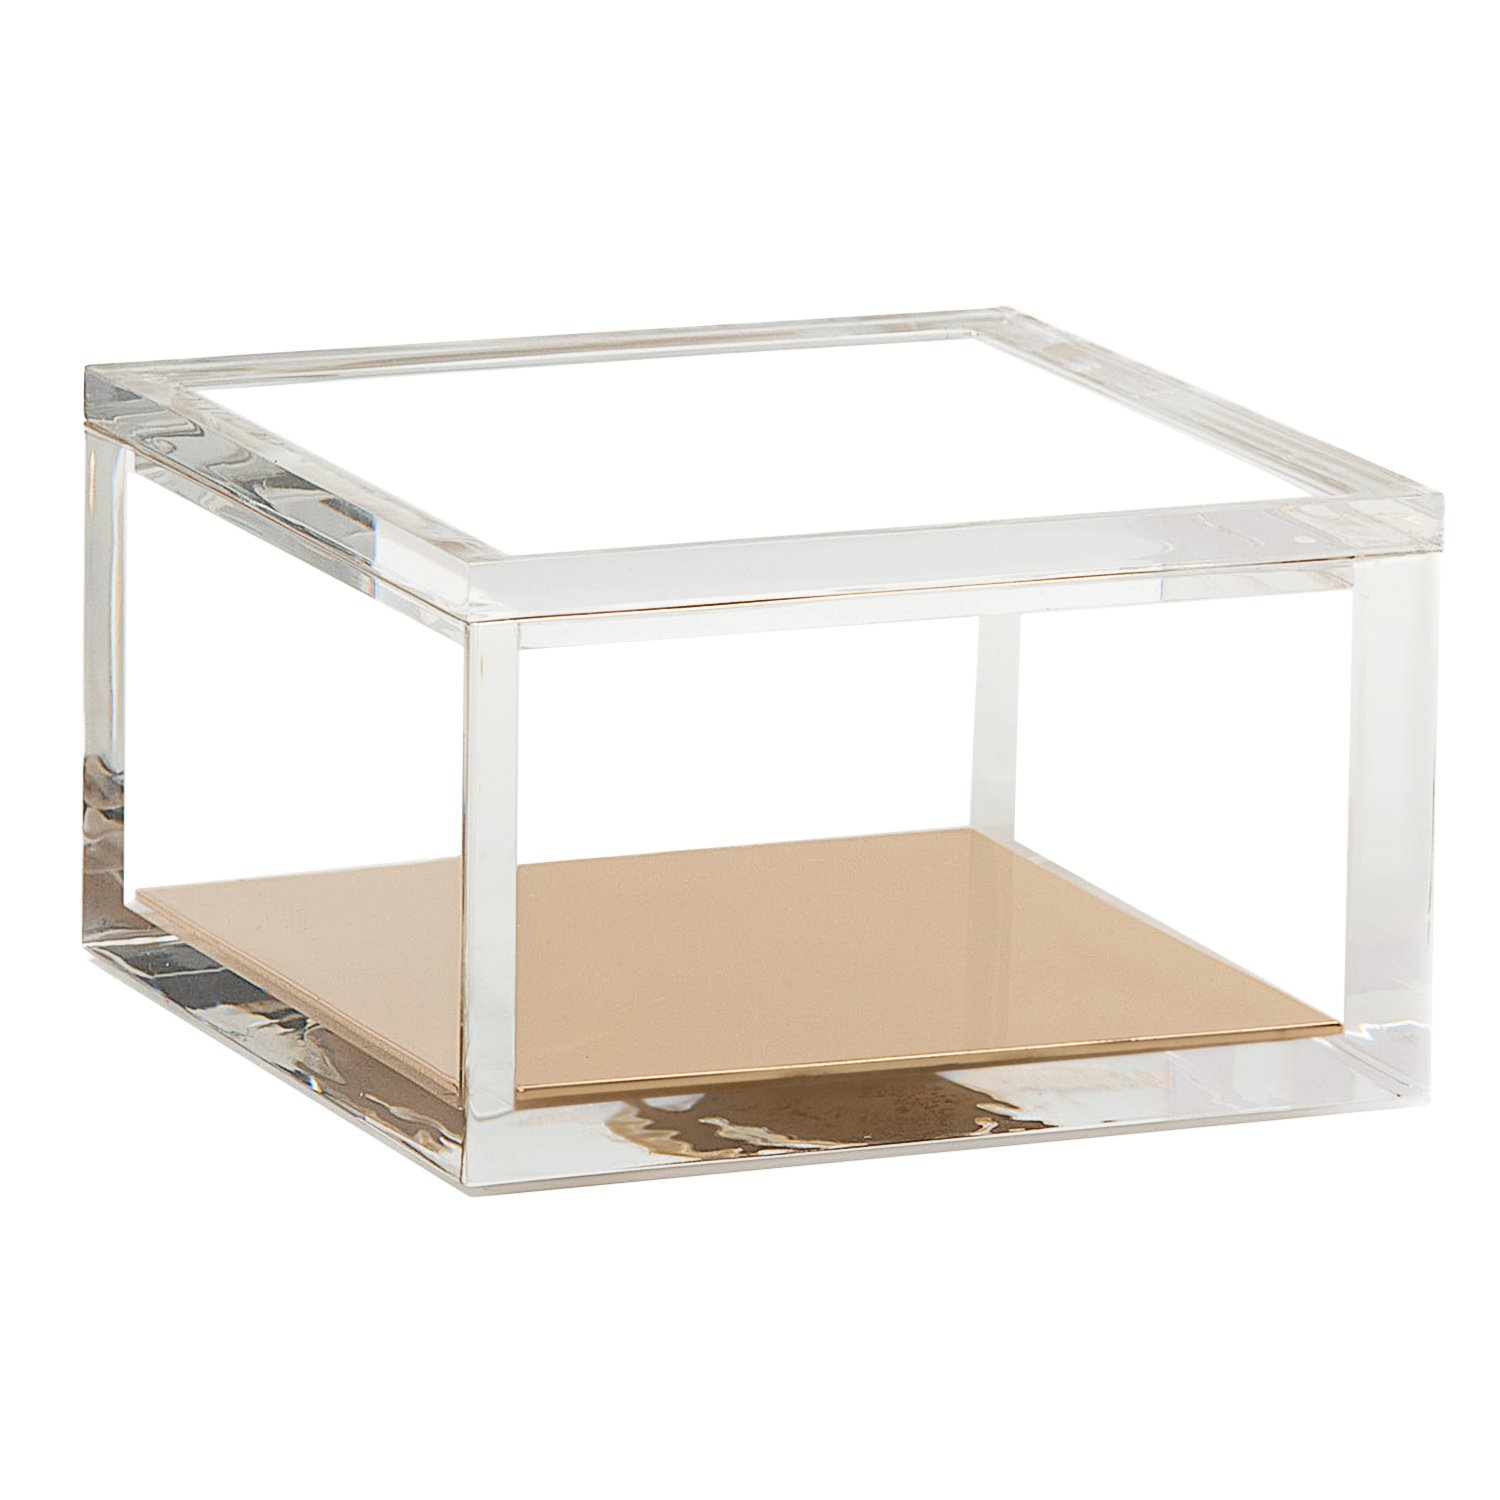 Acrylic & Gold Odds & Ends Box - A Classic Modern Design to Help Organize and Brighten Up Your Desk – Elegant Office Accessory (Small)